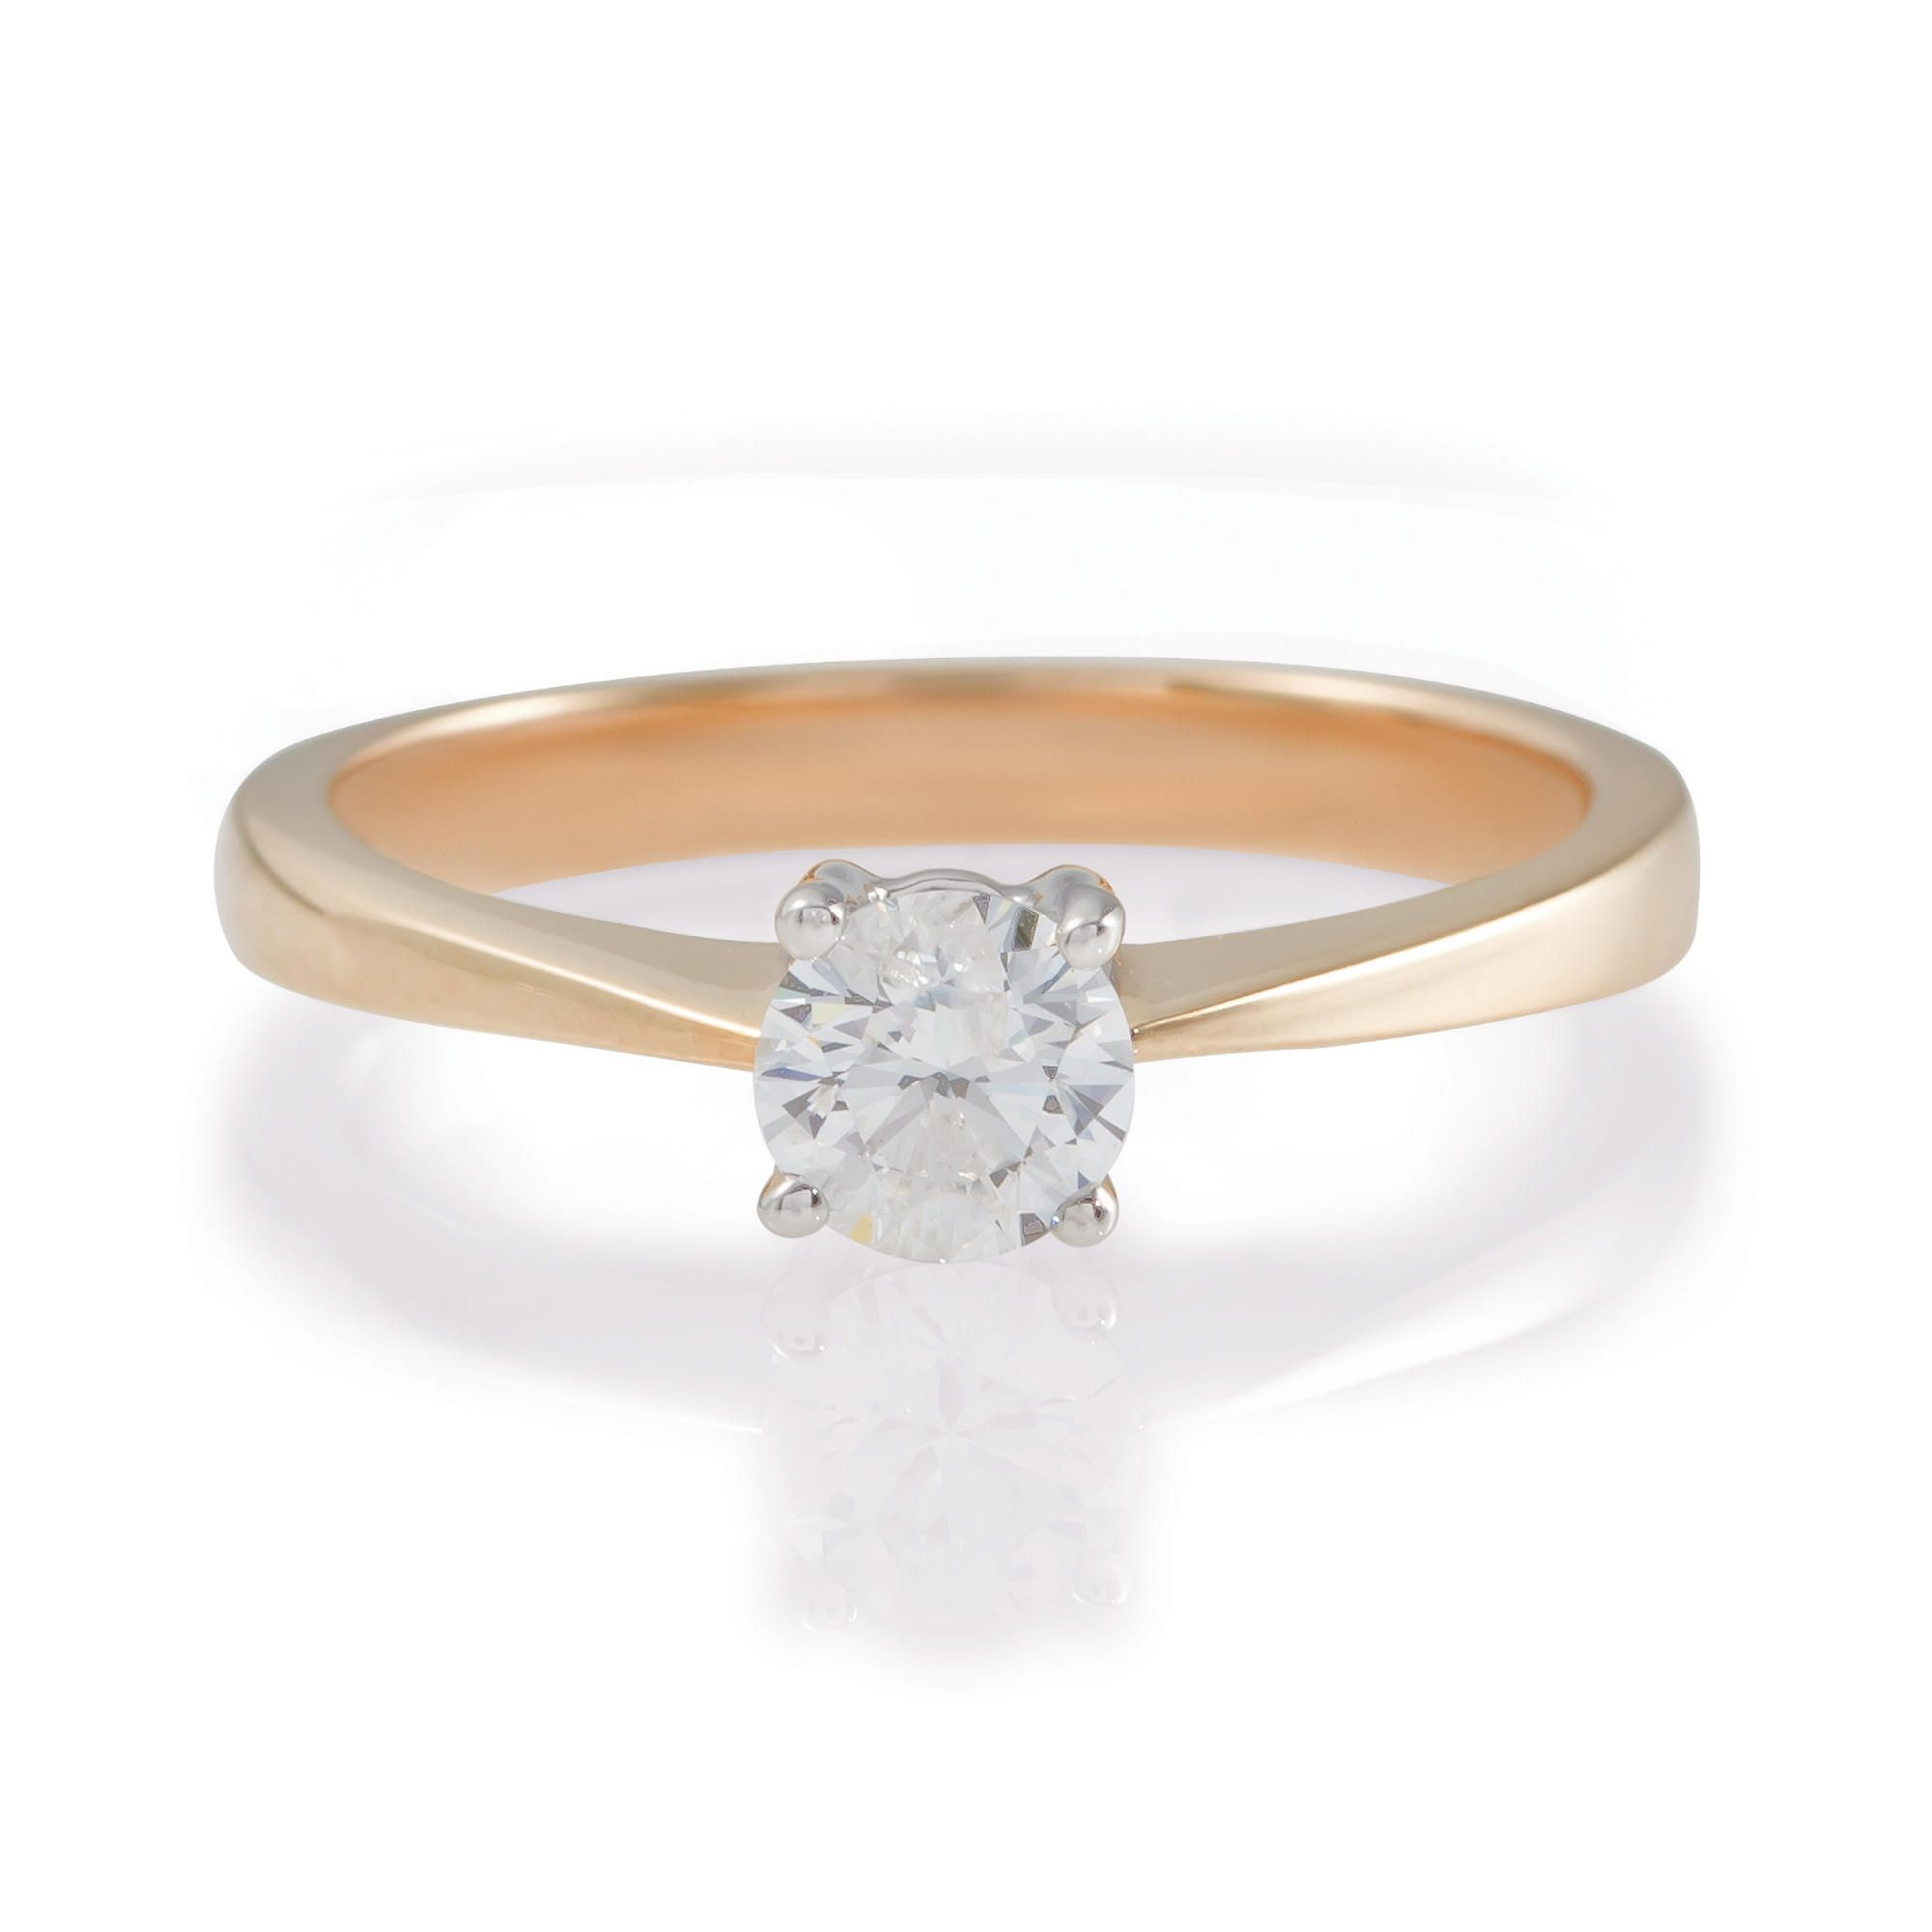 9ct Gold 1/2ct Diamond Solitaire Ring, N at Tesco Direct